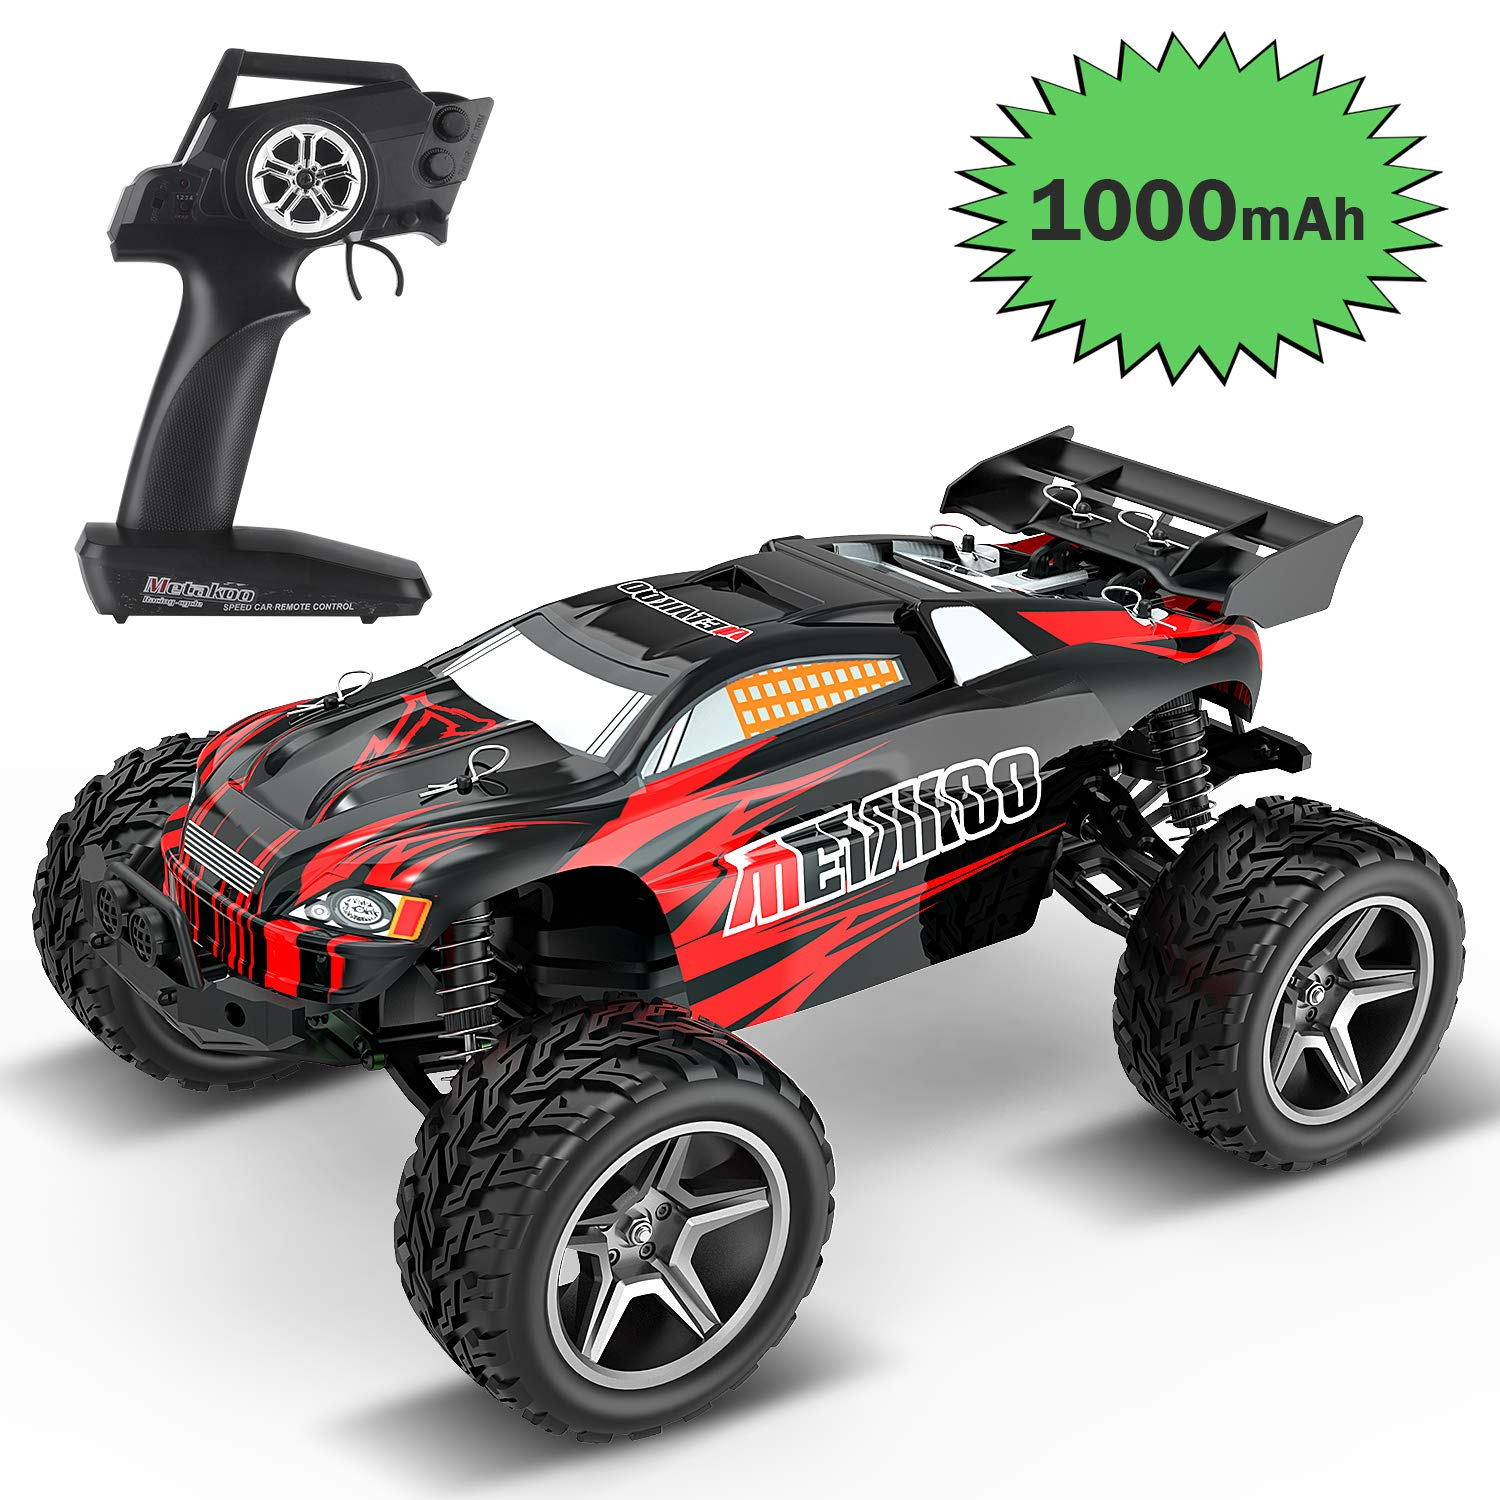 METAKOO CH1 Advanced RC Car, 1/12 Scale 2WD High-Speed Racing Drift Car, Speed up to 30~45 km/h, Two 1000mAh Batteries, Brushed Motor, Shock Absorber, 2.4GHz, for Kids & Adults